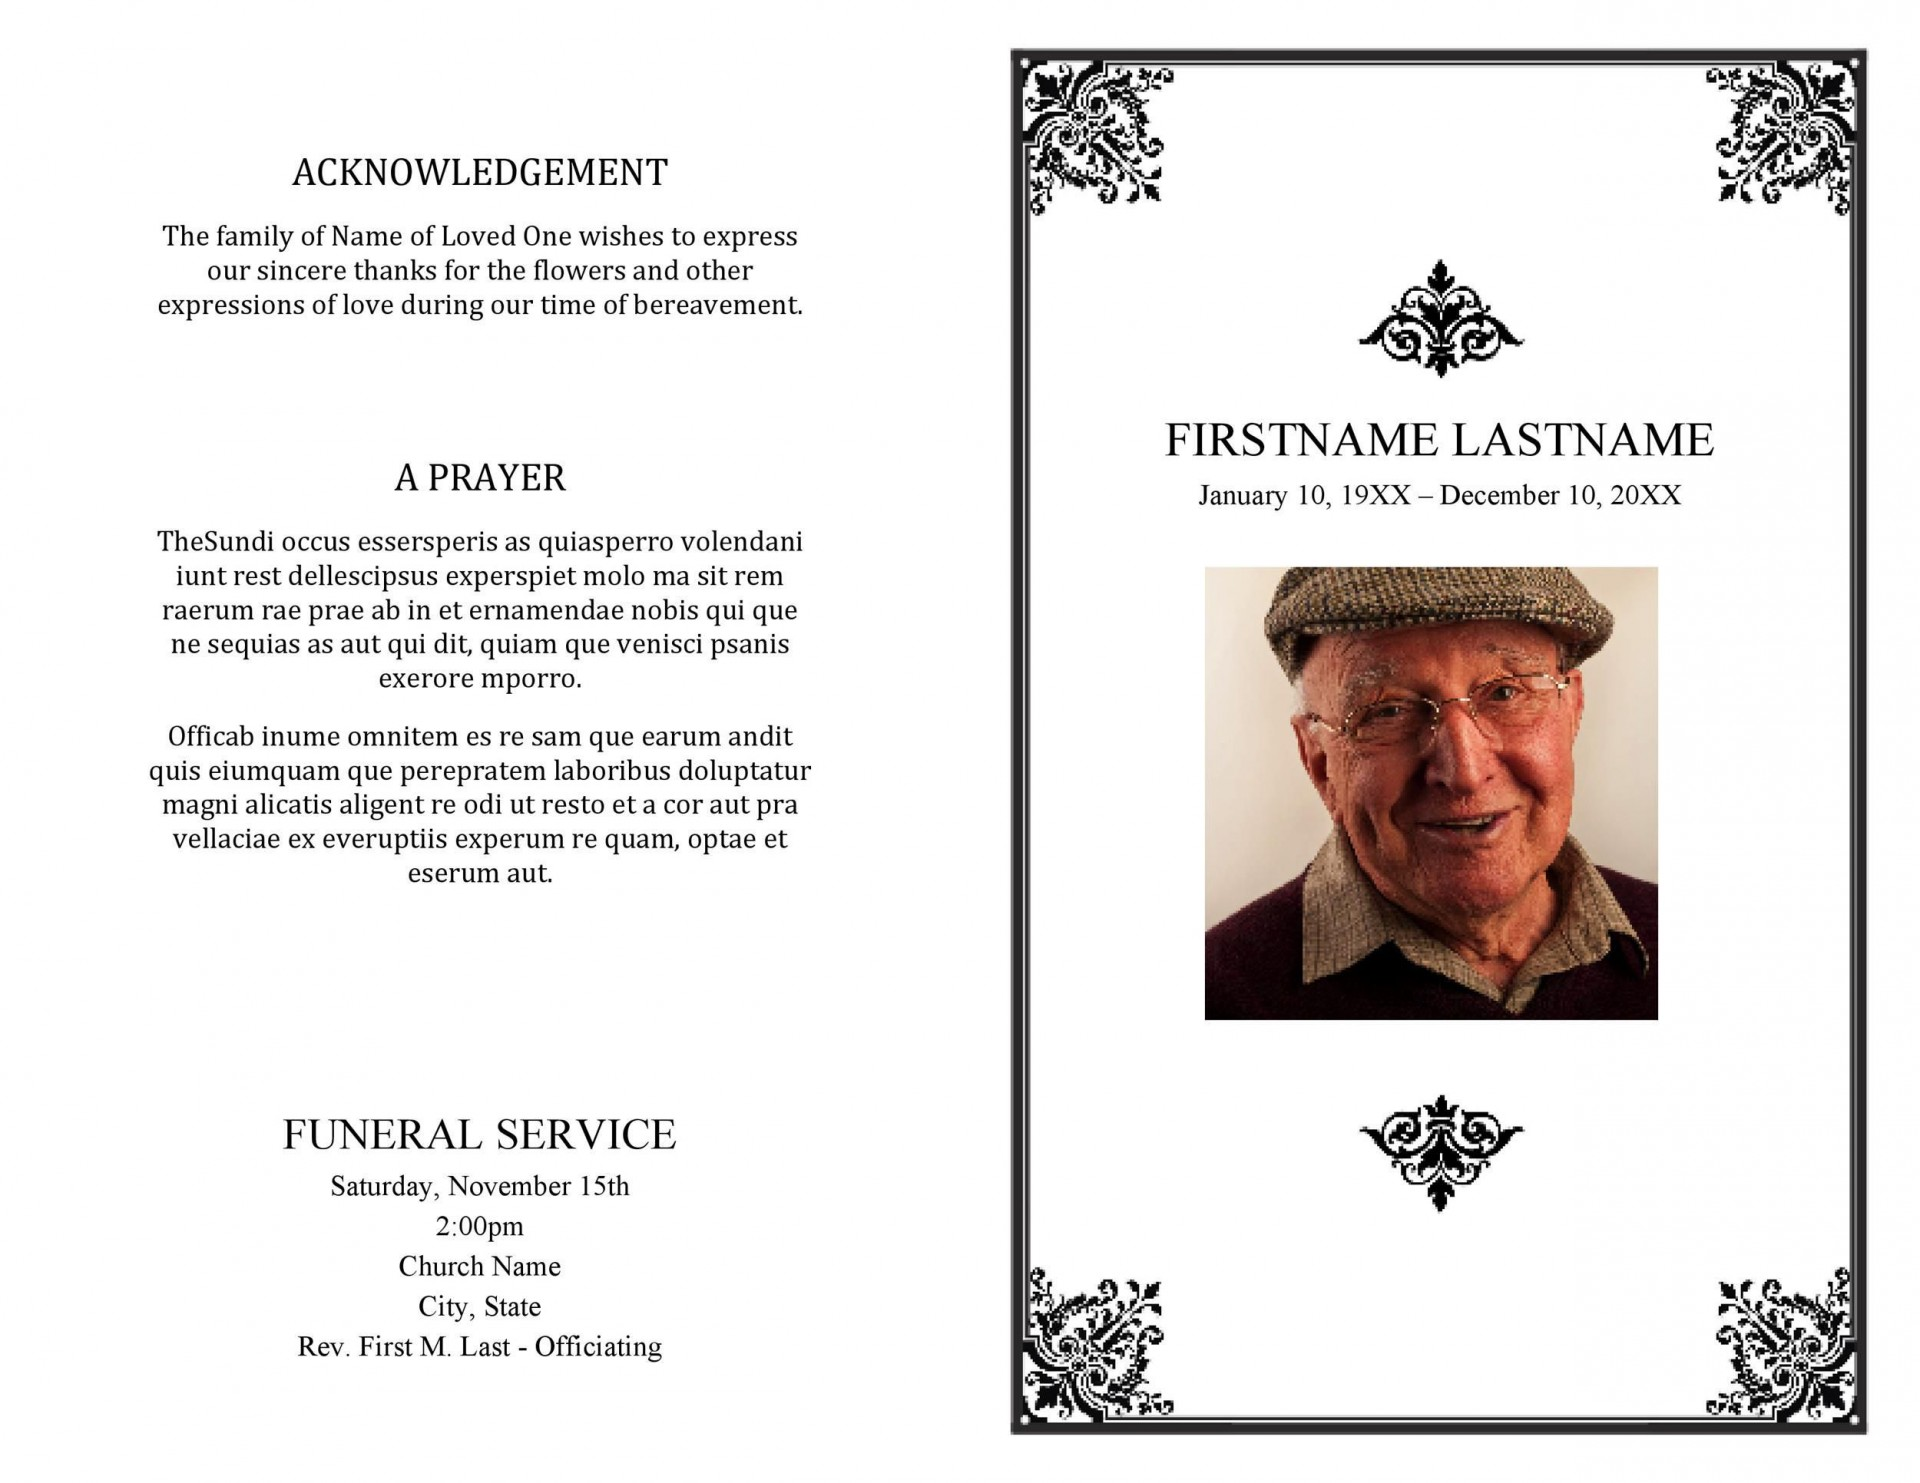 004 Imposing Template For Funeral Program On Word Example  2010 Free Sample Wording1920